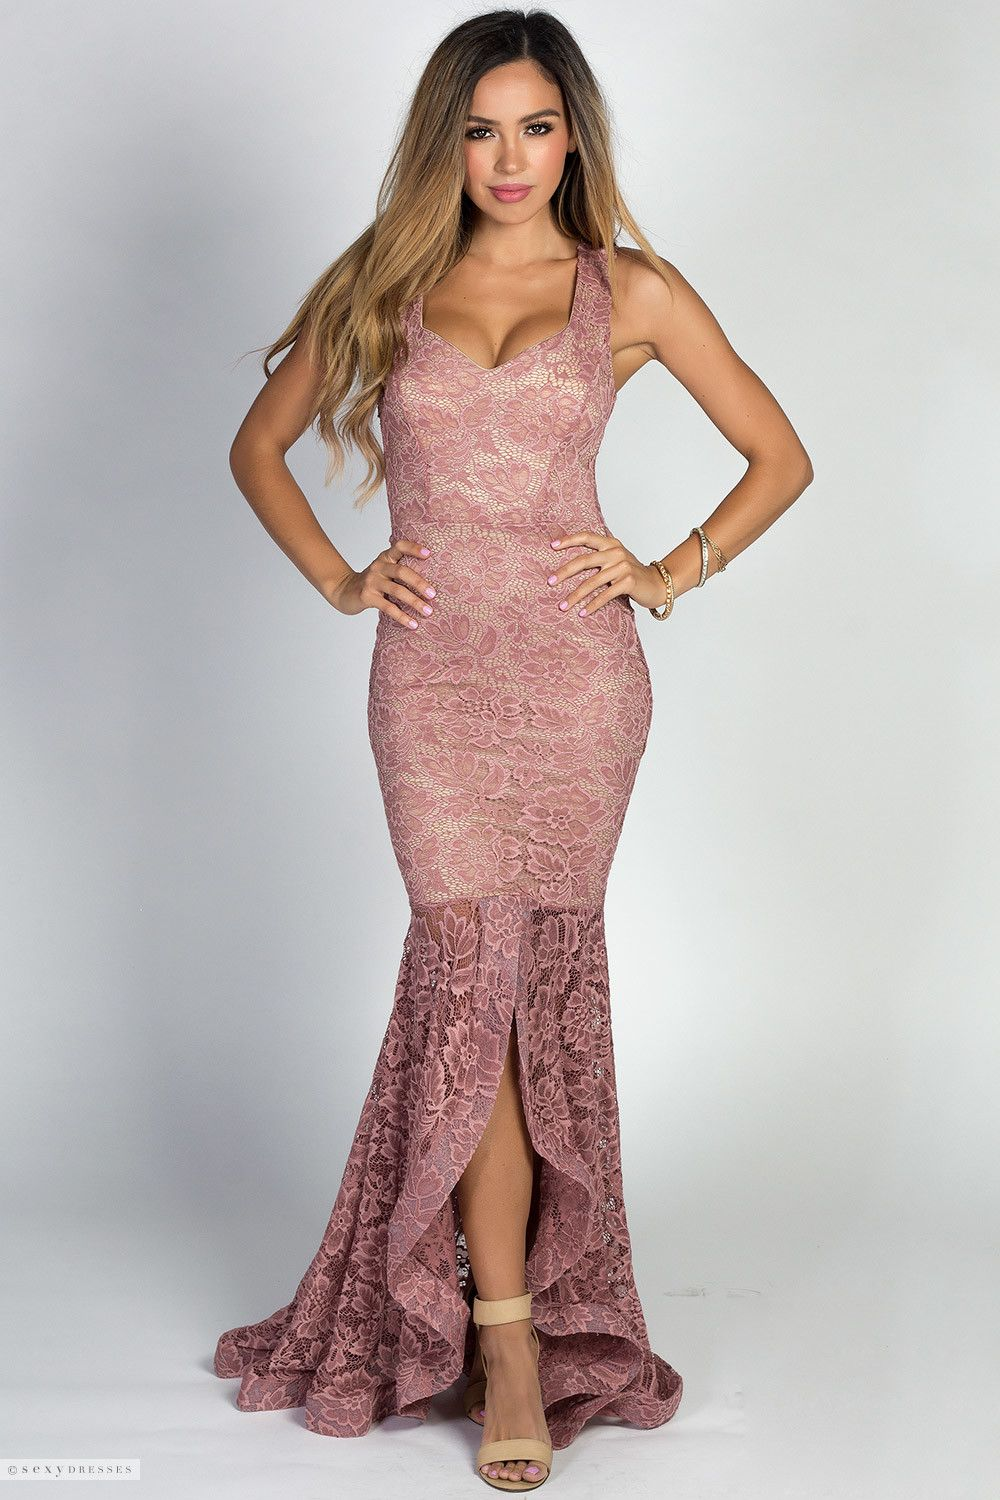 53191529d5e Sleeveless Ruffled Mermaid Style Mauve Pink Lace Maxi Gown with Sweetheart  Neckline